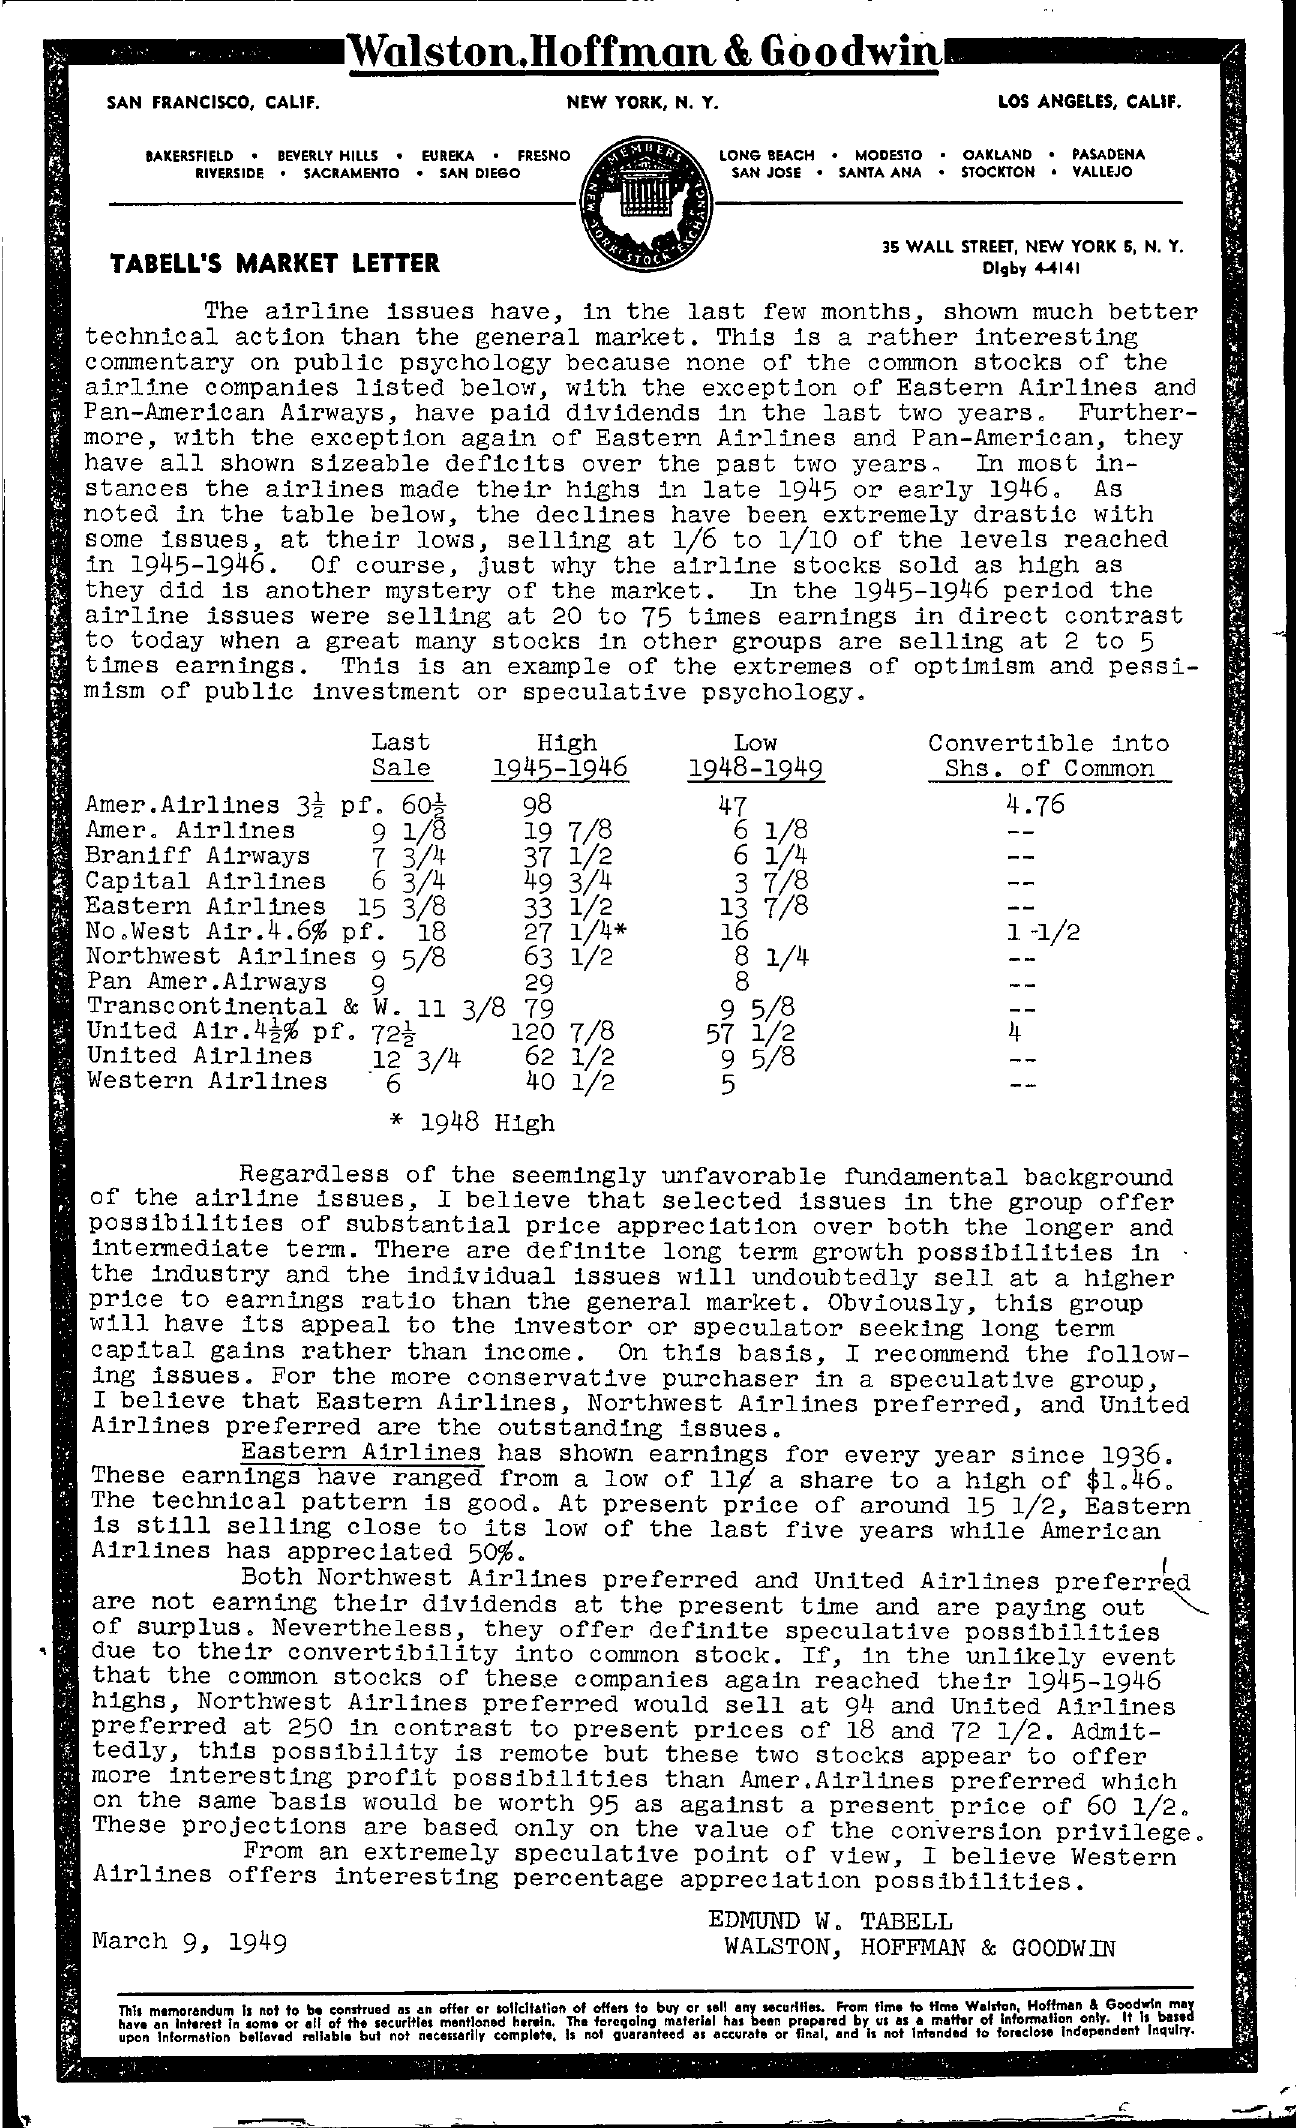 Tabell's Market Letter - March 09, 1949